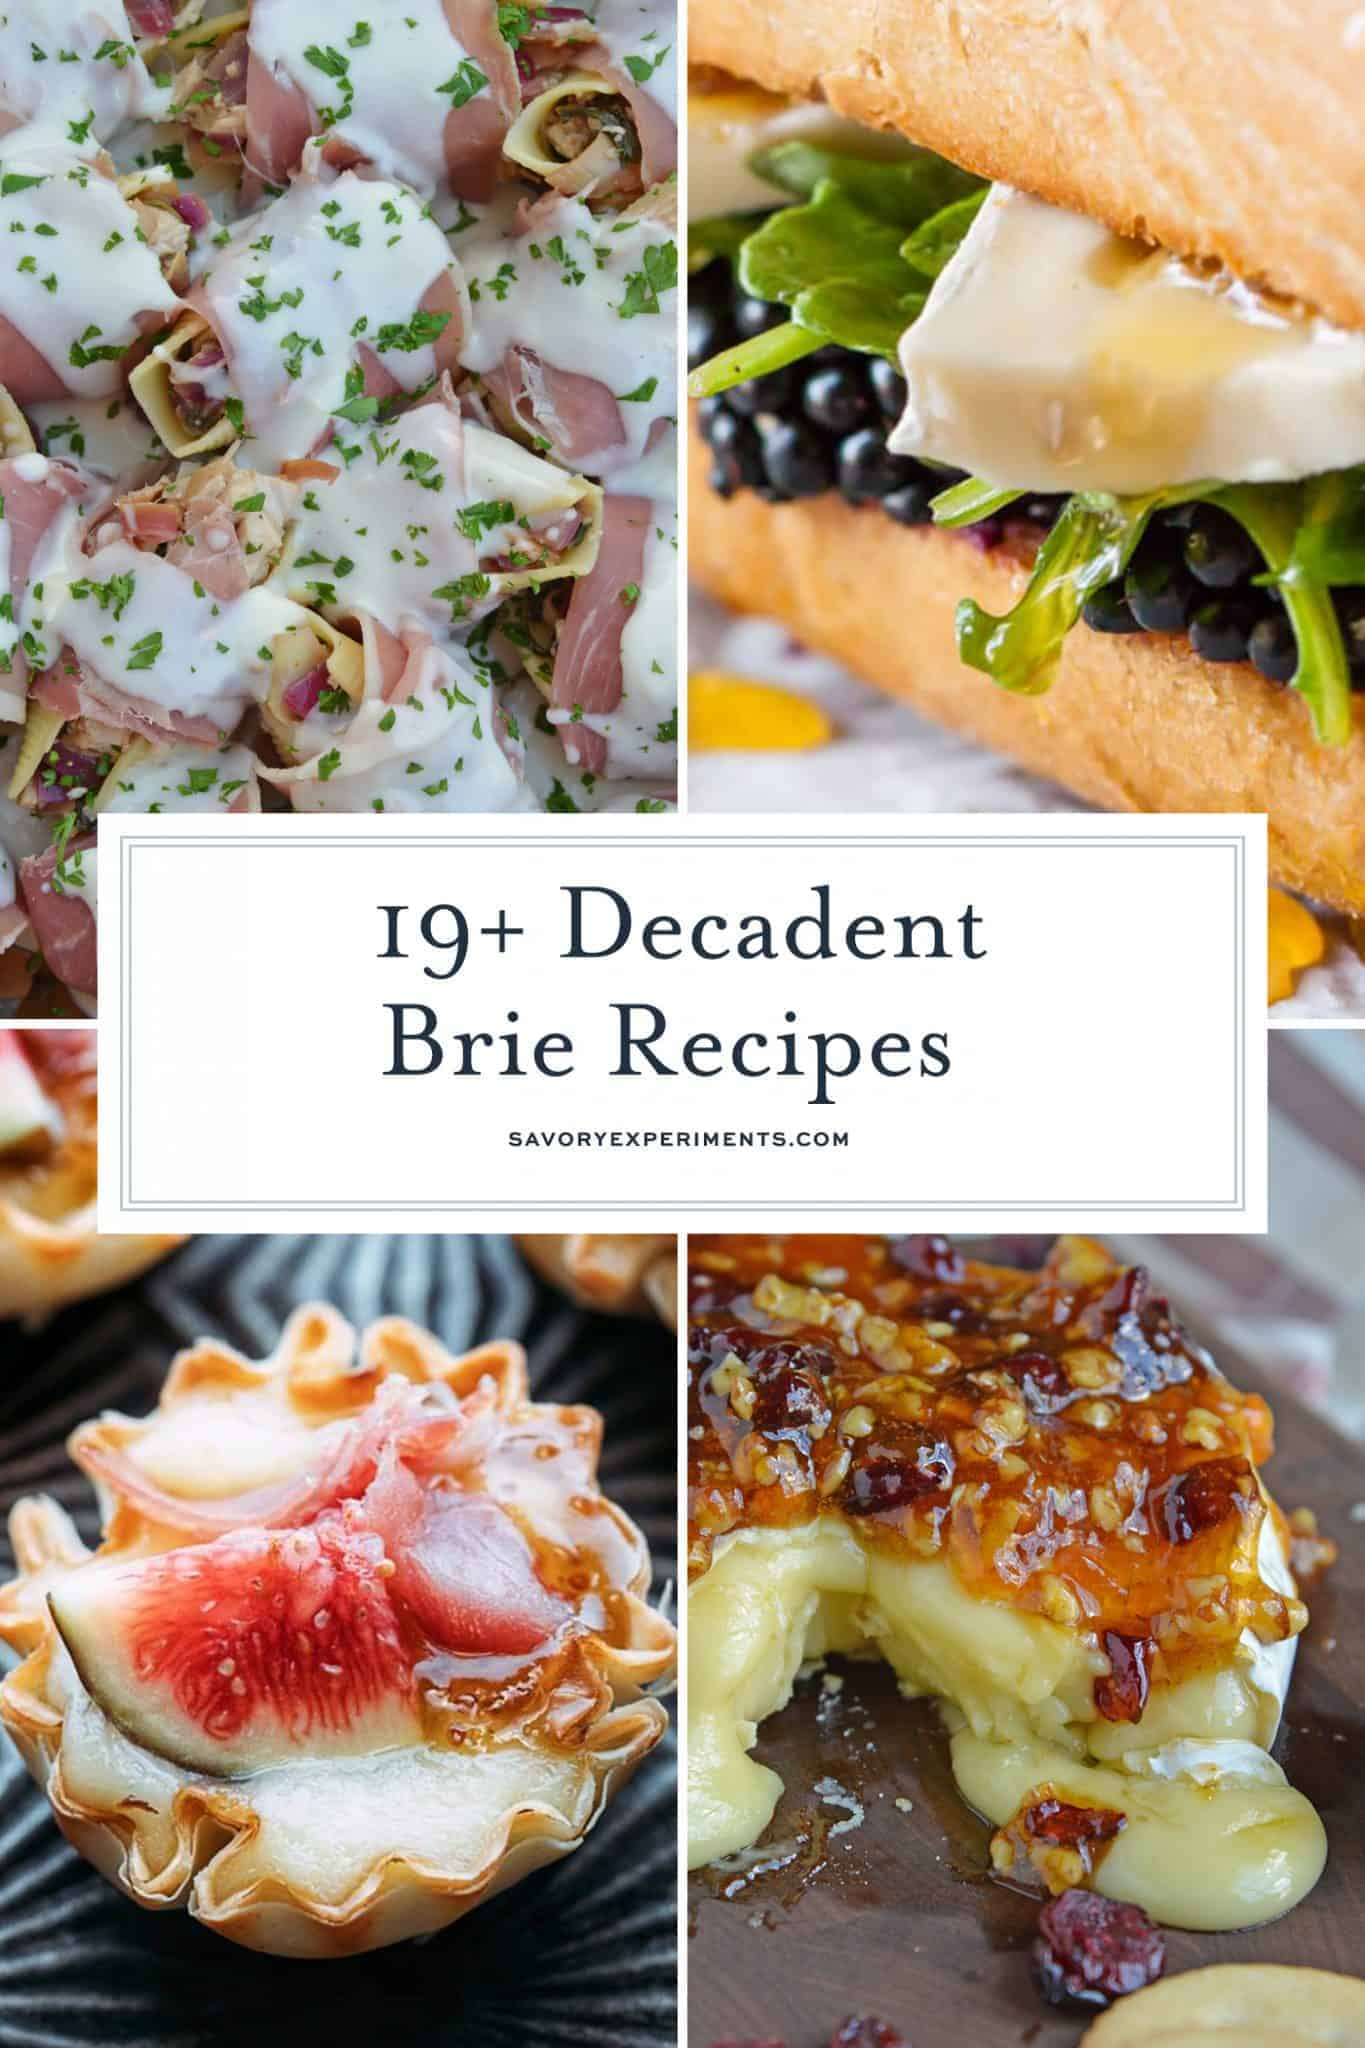 Collage of brie recipes